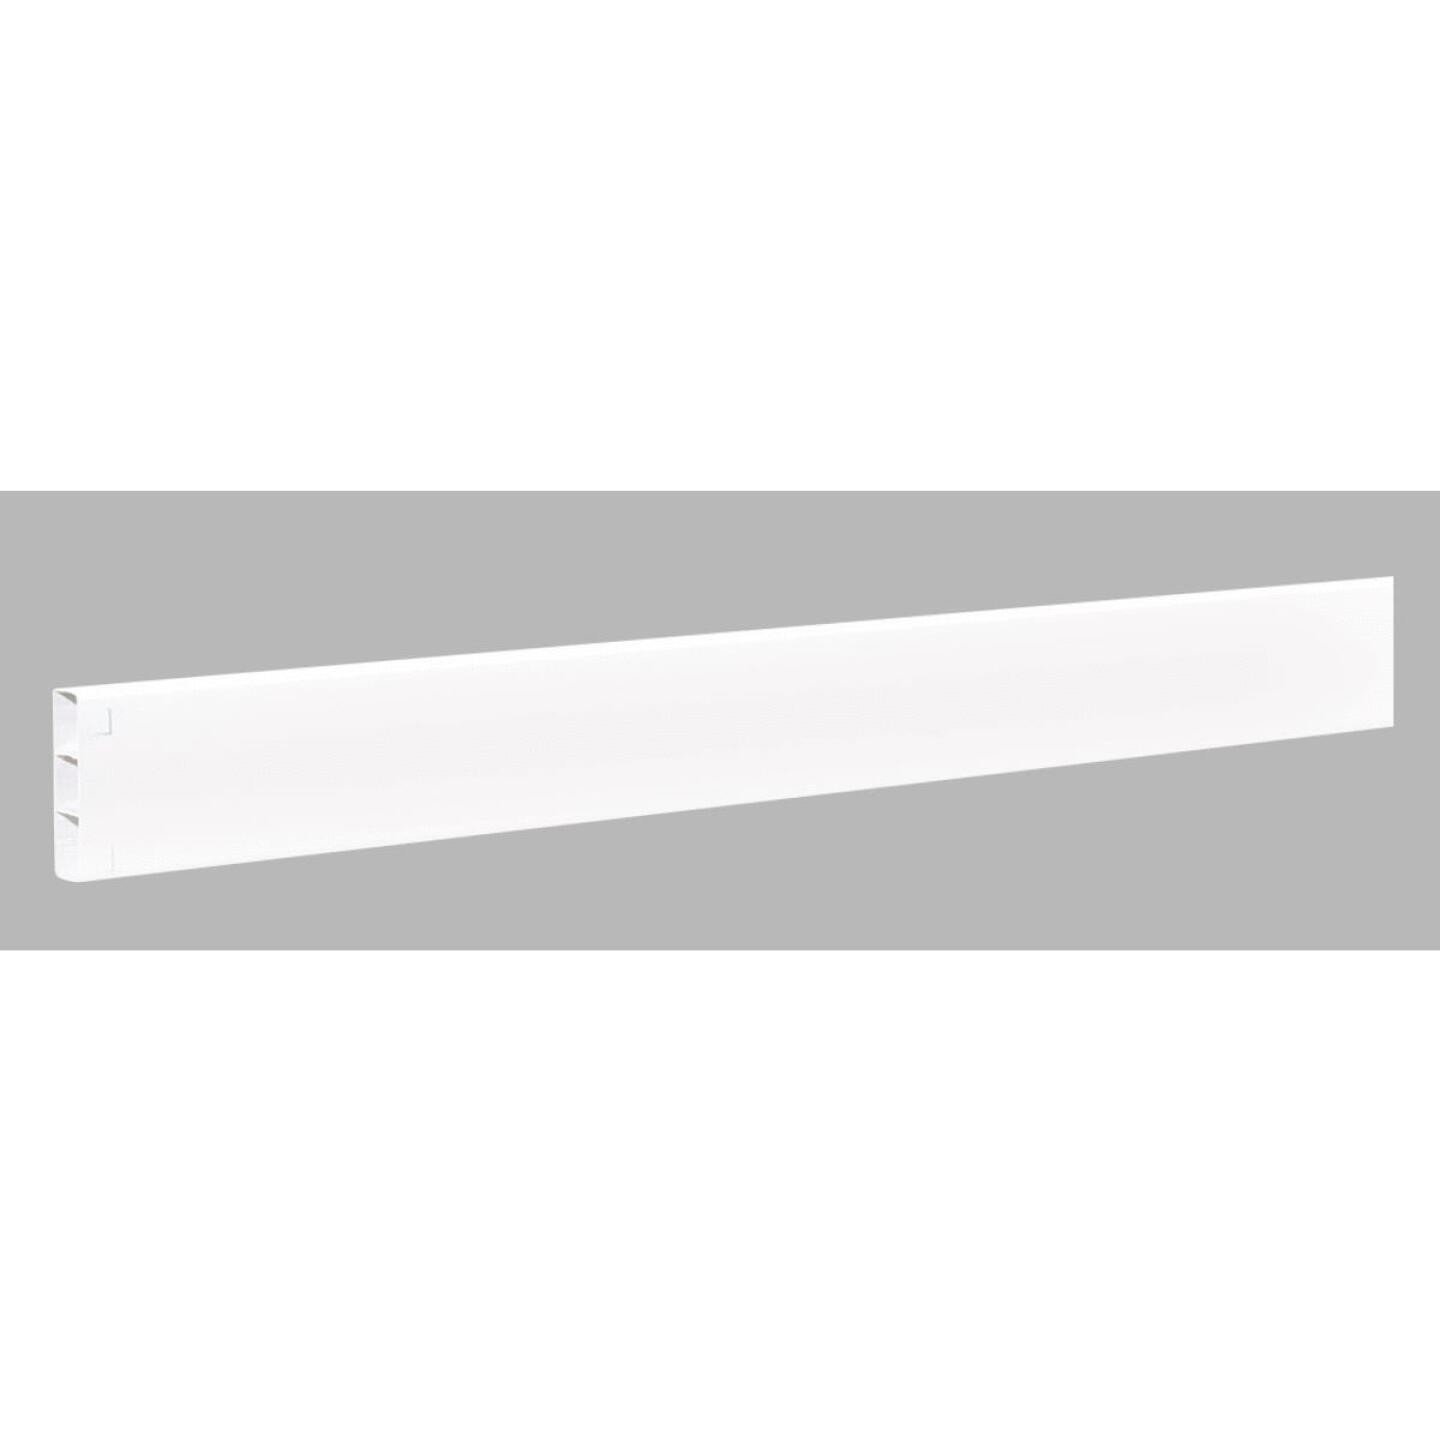 Outdoor Essentials 2 In. x 6 In. x 192 In. White Vinyl Fence Rail Image 1